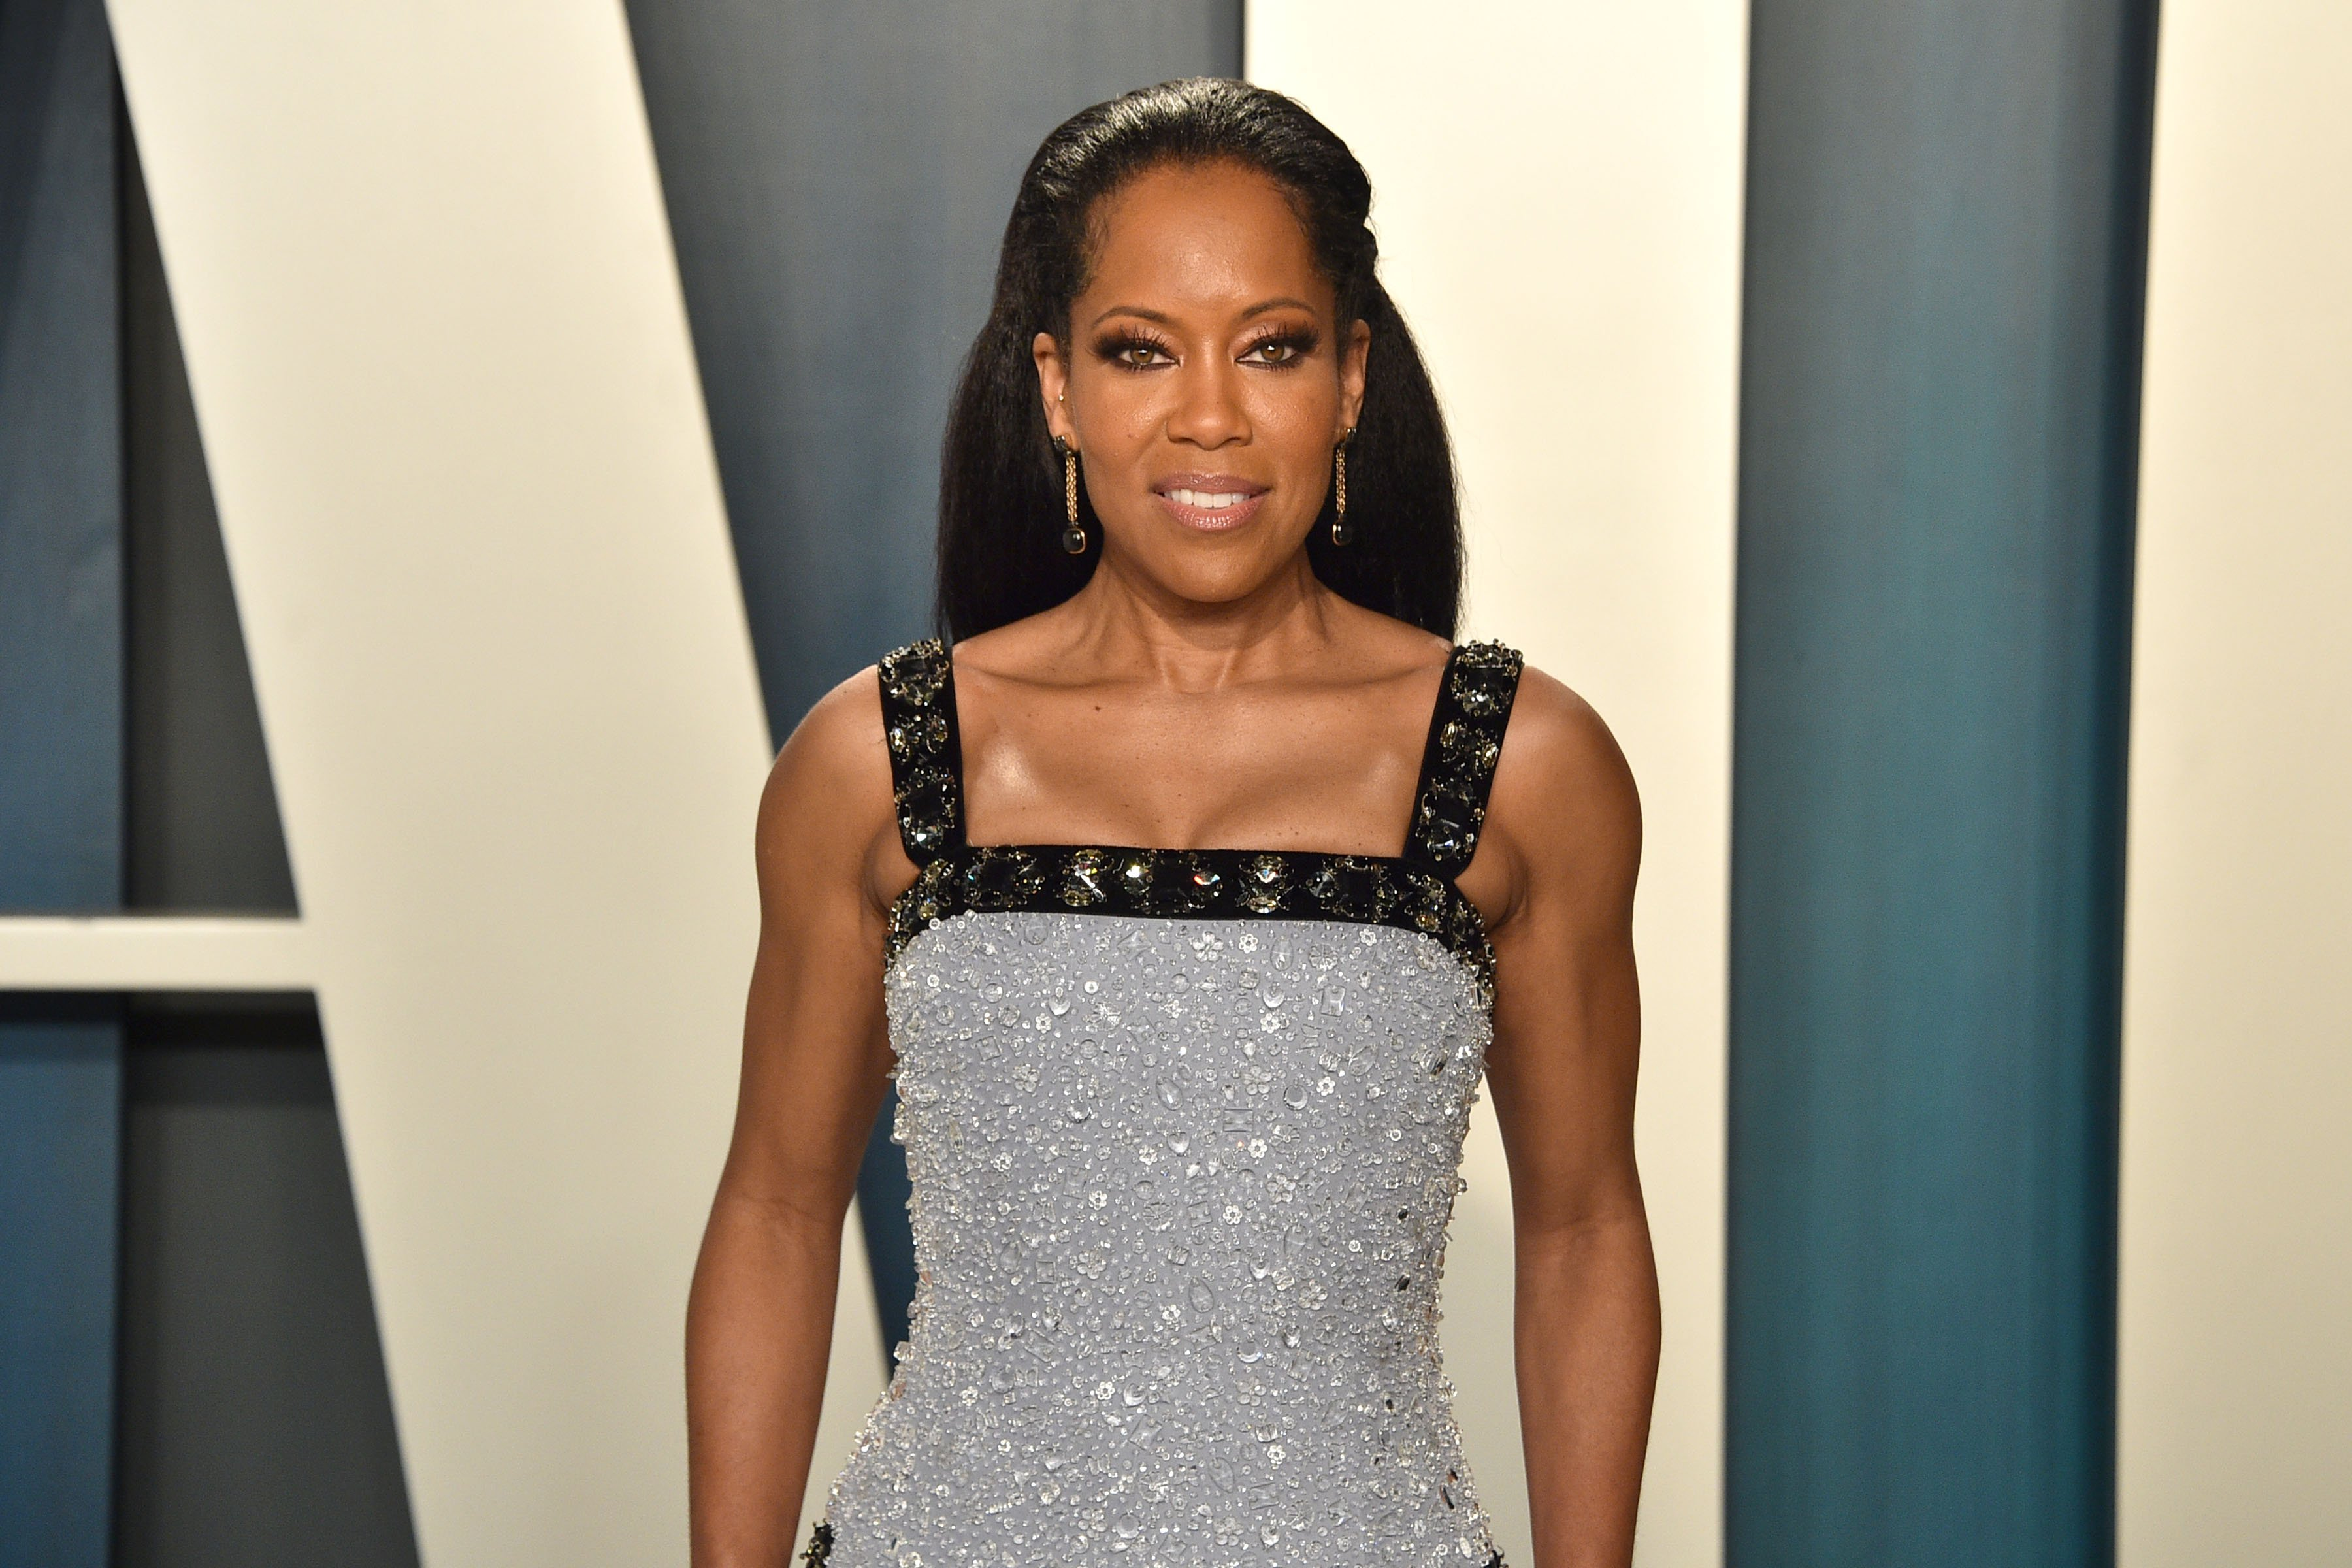 Regina King at Wallis Annenberg Center for the Performing Arts for the 2020 Vanity Fair Oscar Party on February 09, 2020 in Beverly Hills, California.|Source: Getty Images